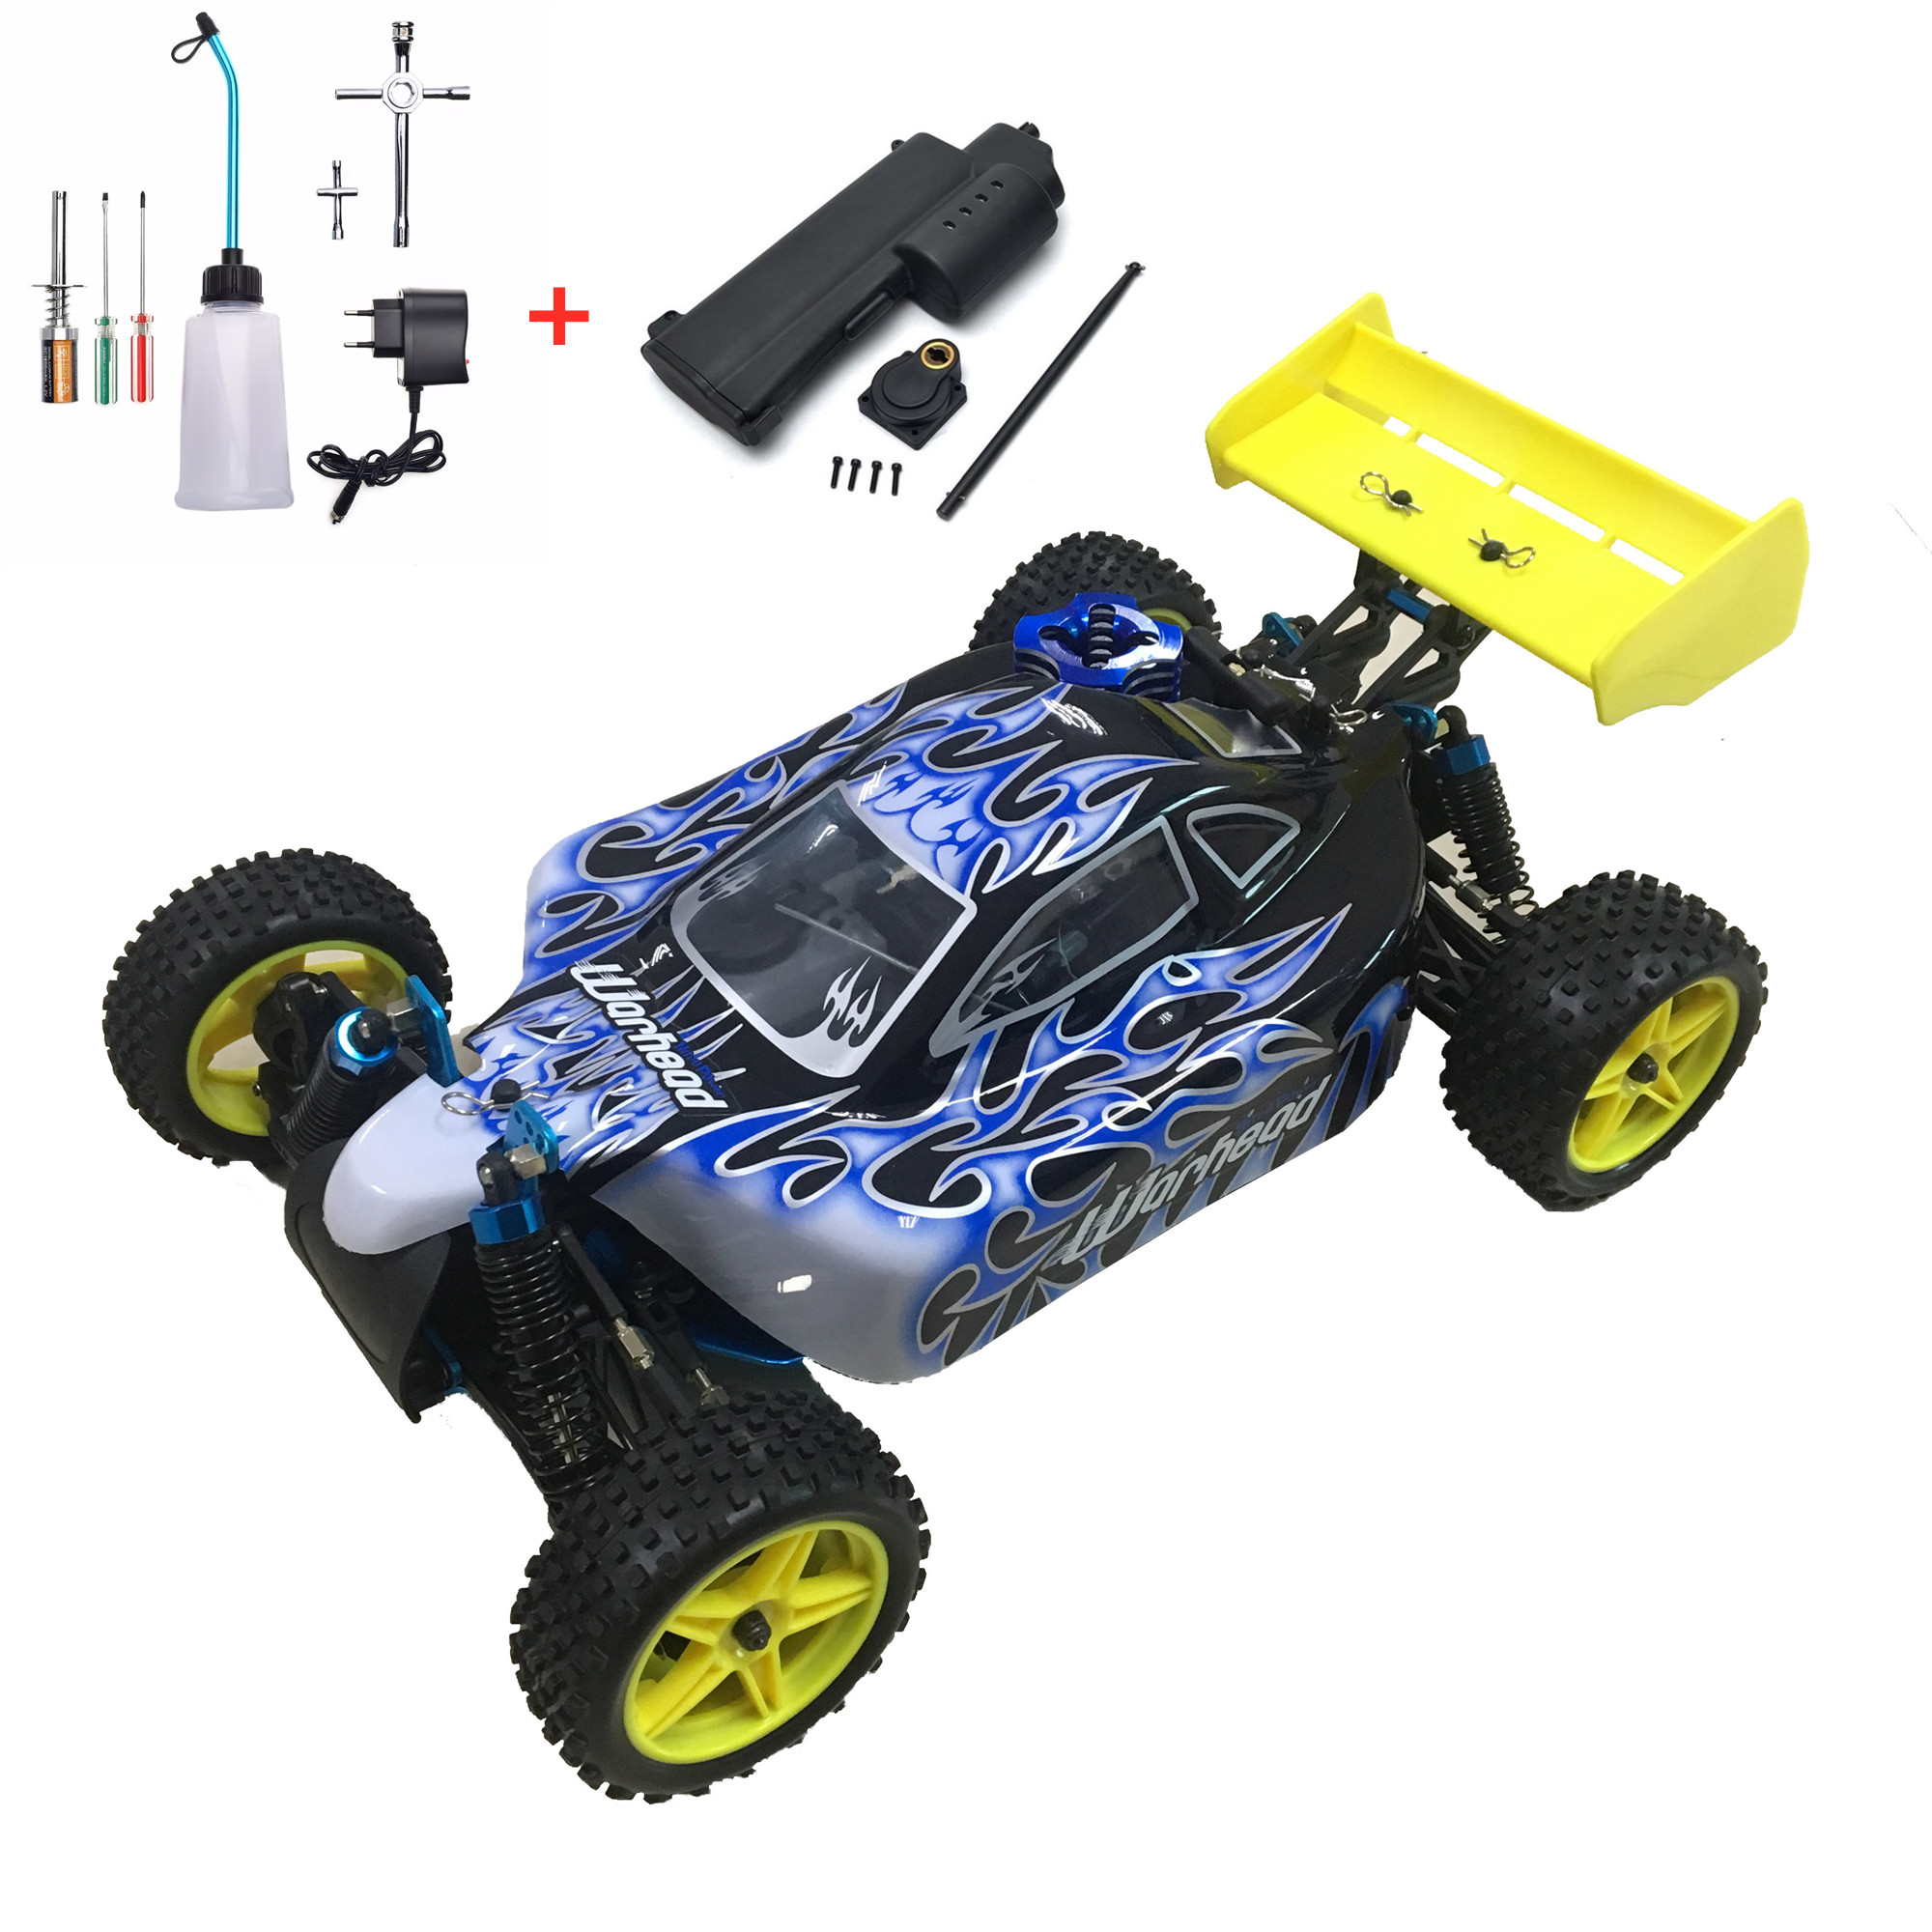 HSP Baja 1/10th Scale Nitro Power Off Road Buggy 4WD RC Hobby Car 94166 With 18cxp Engine 2.4G Radio Control